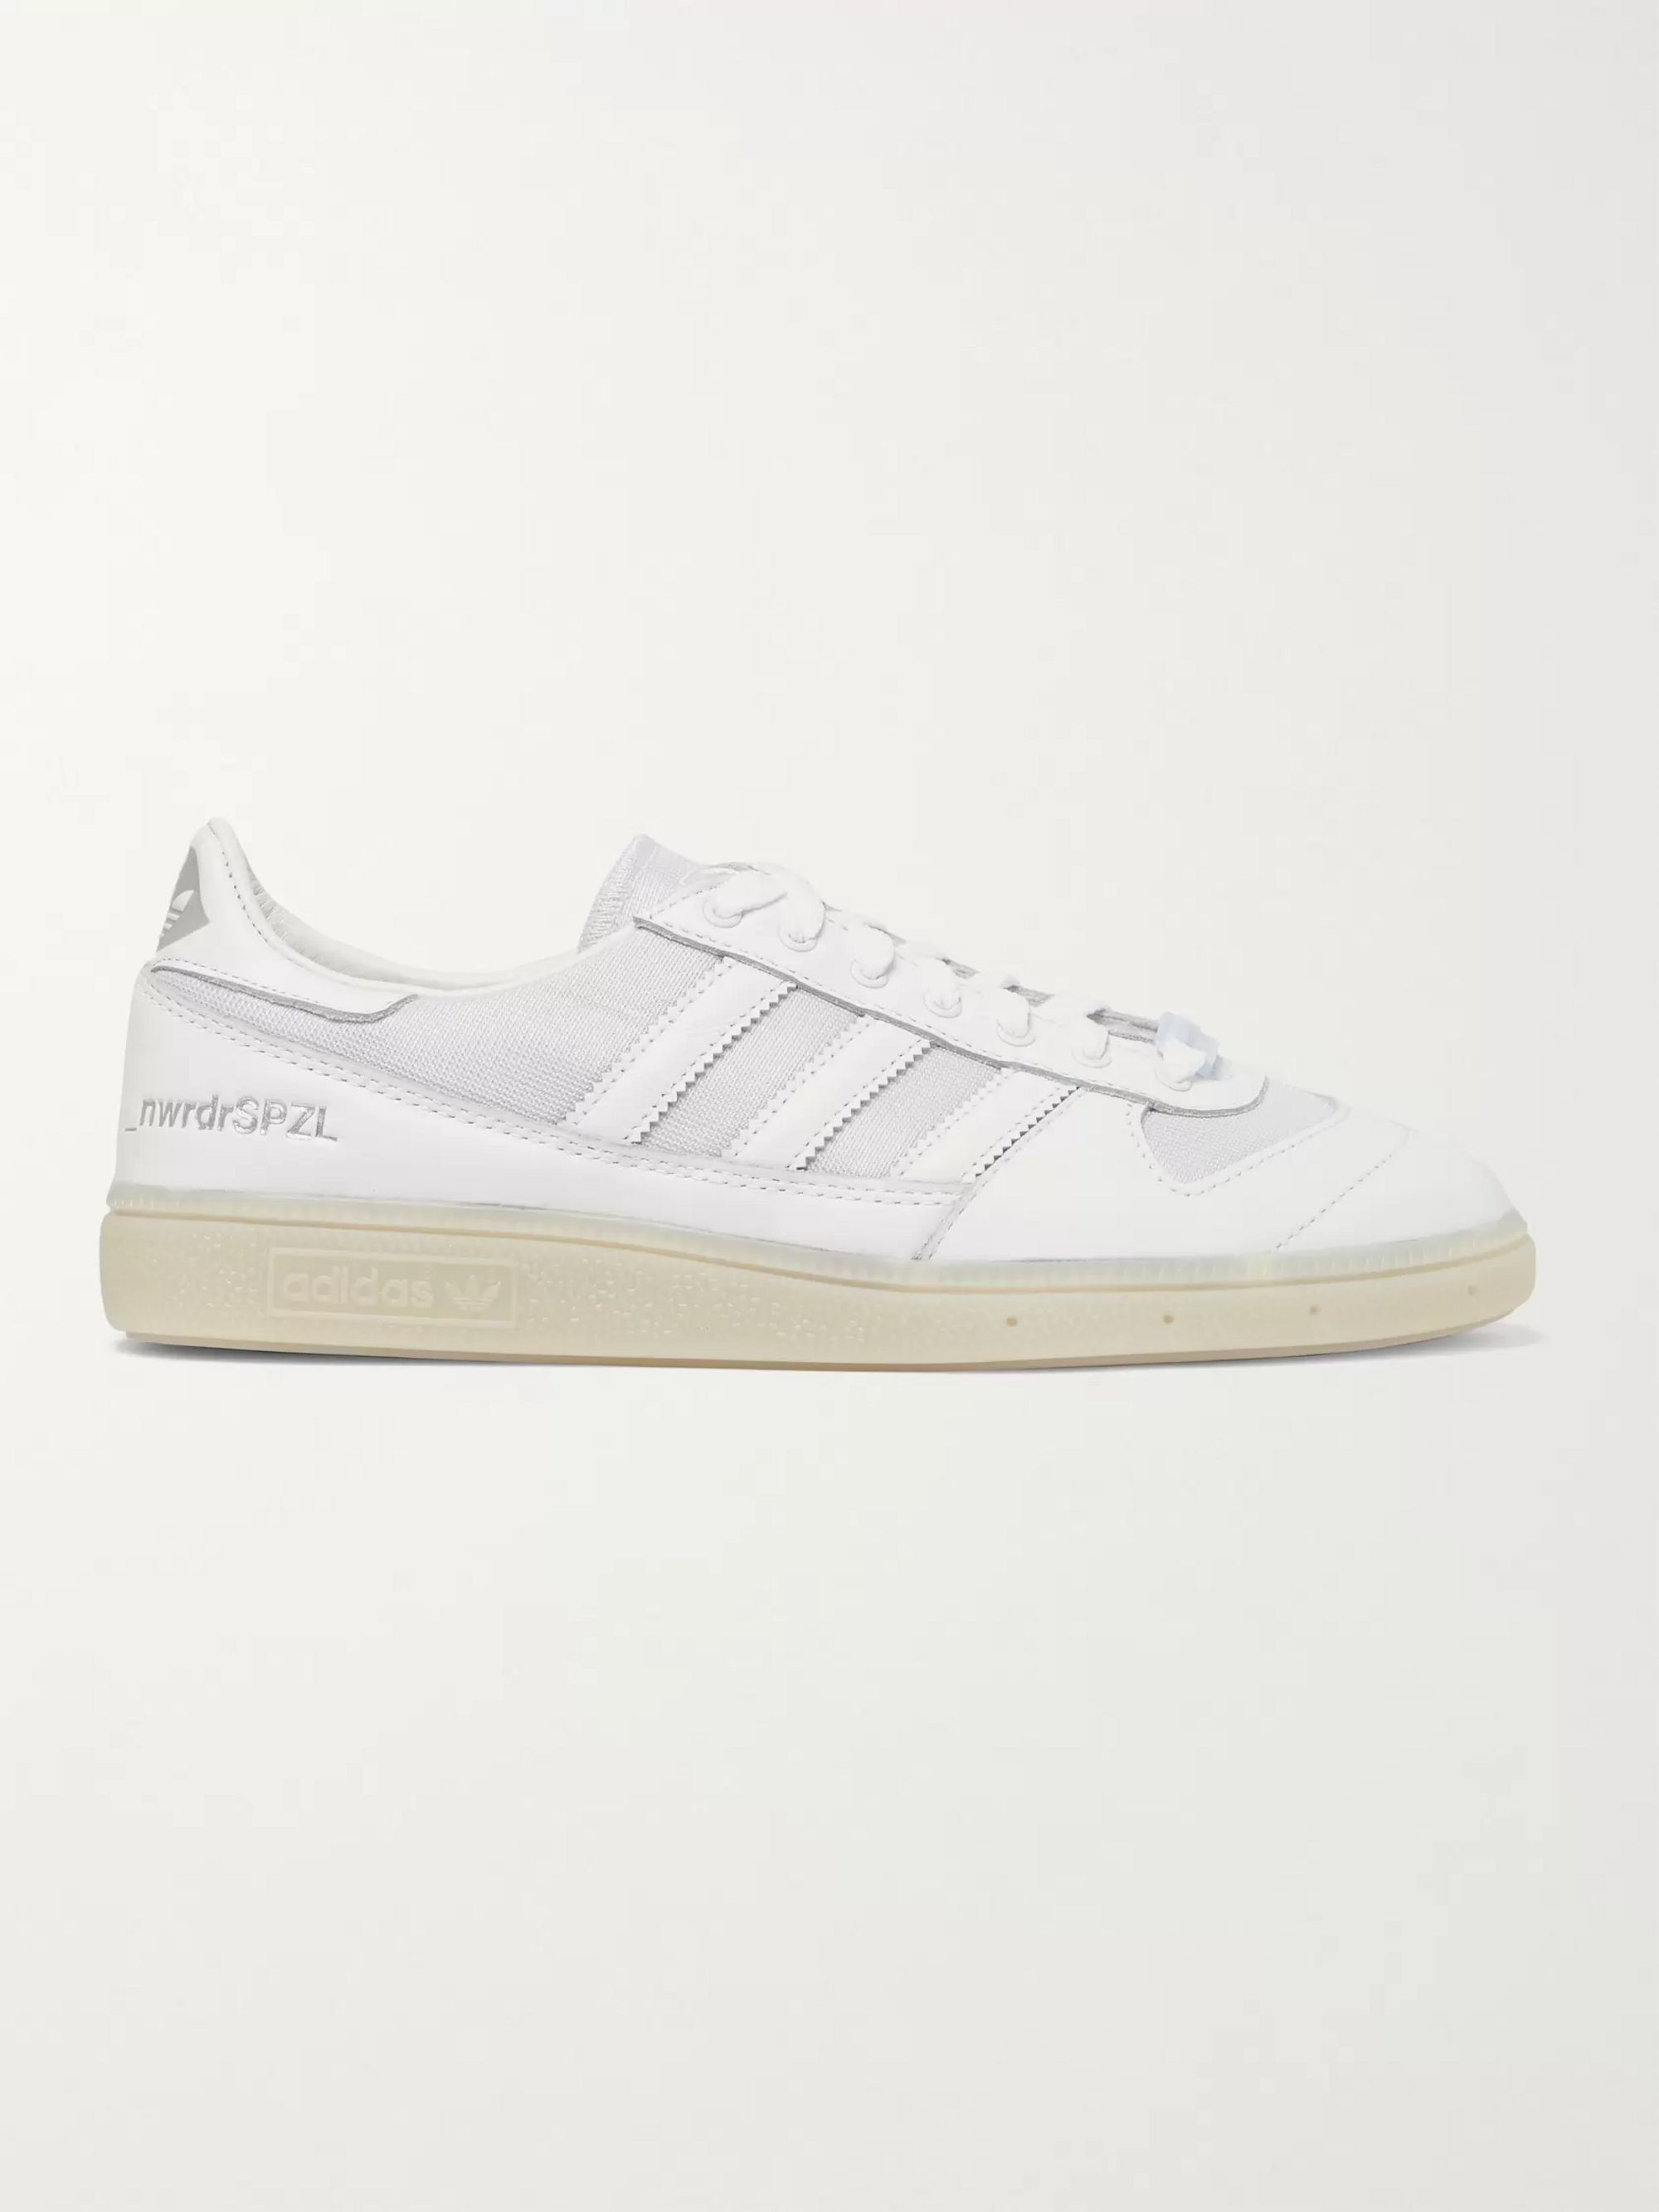 adidas Consortium + New Order SPEZIAL Wilsy Leather and Reflective-Mesh Sneakers